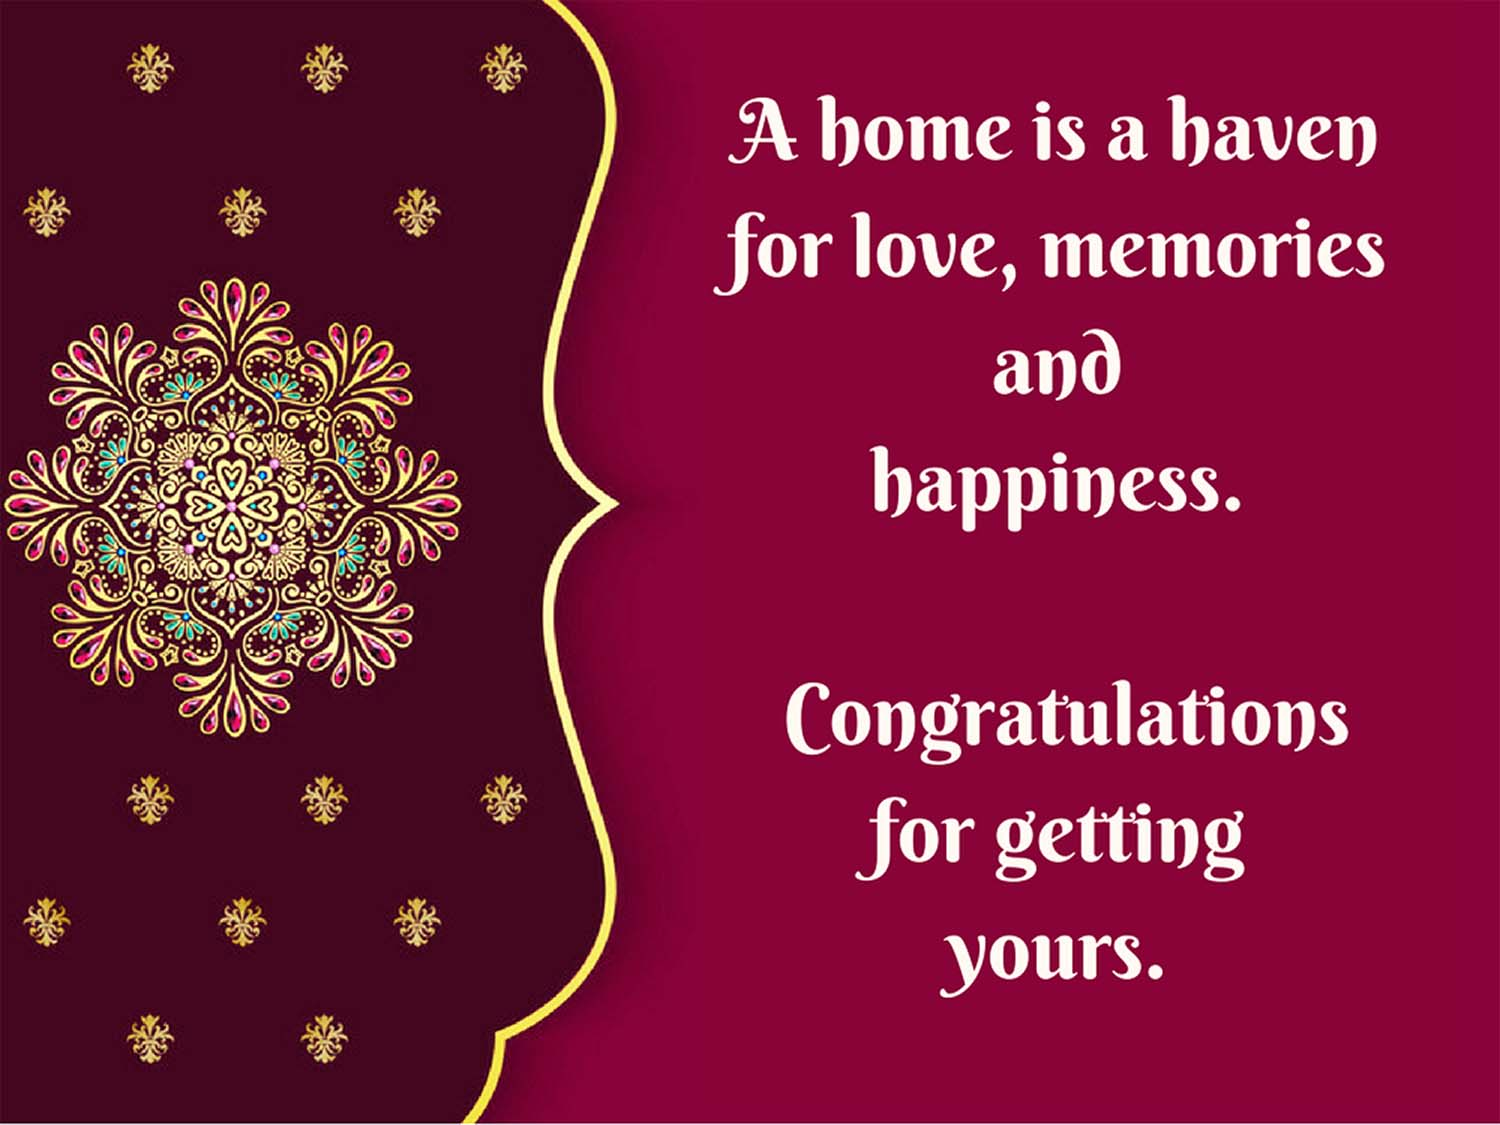 Griha pravesh quotes wishes good luck in your new home messages housewarming wishes pictures m4hsunfo